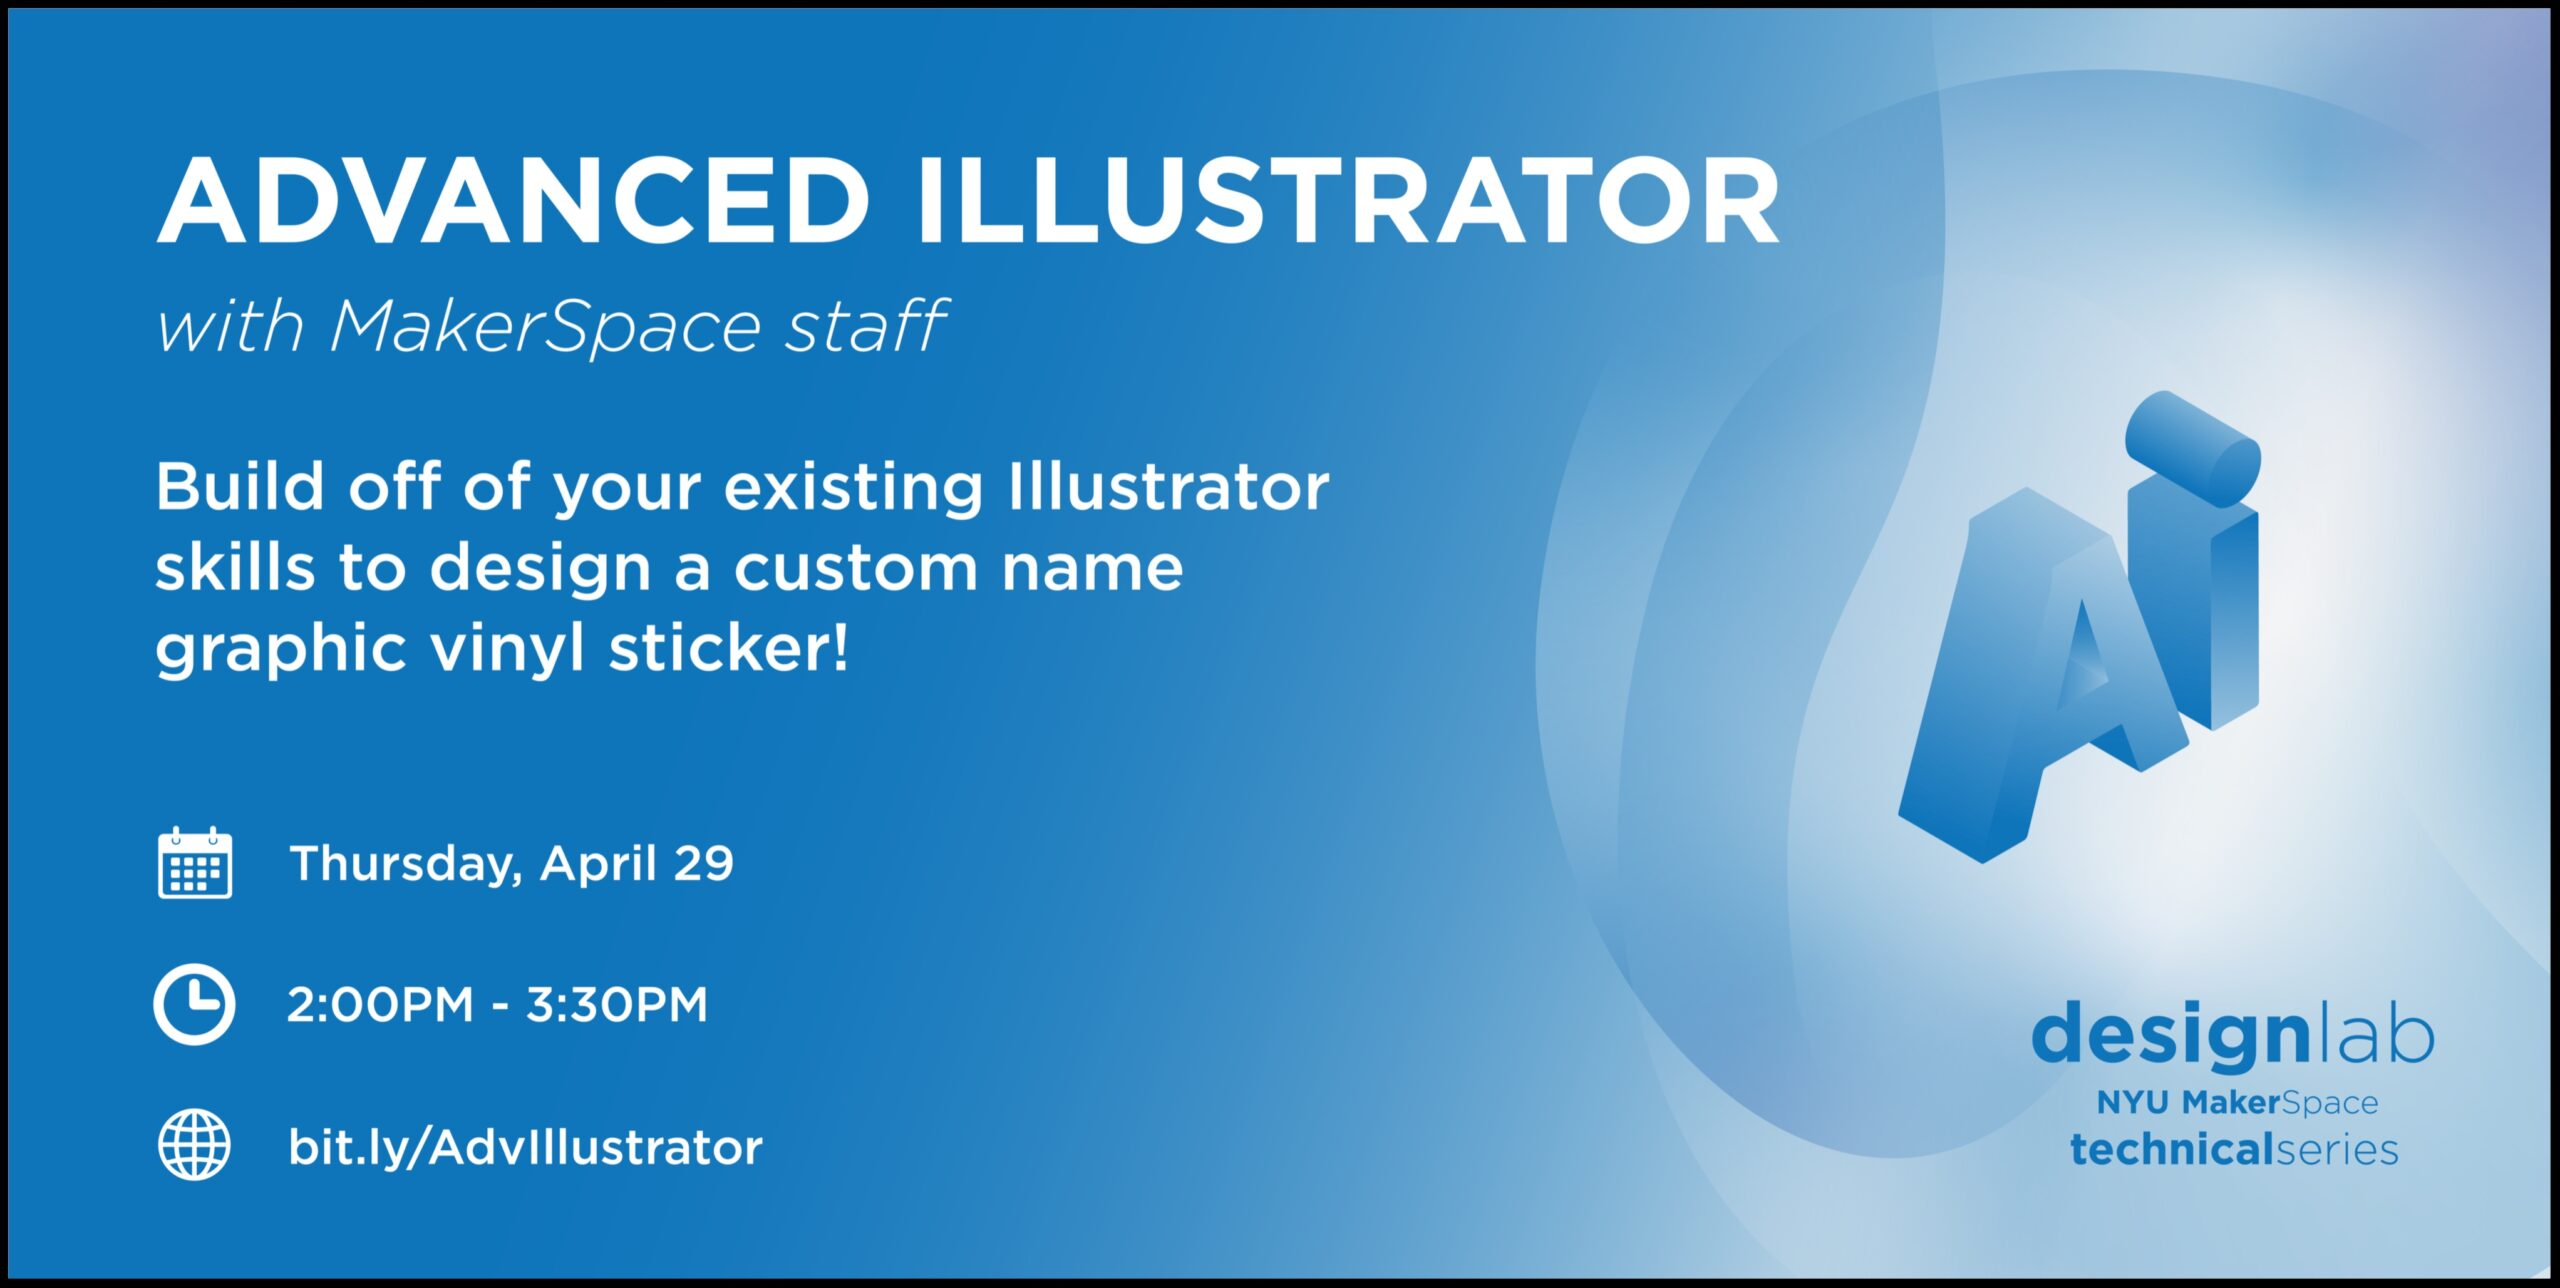 Advanced Illustrator Flyer